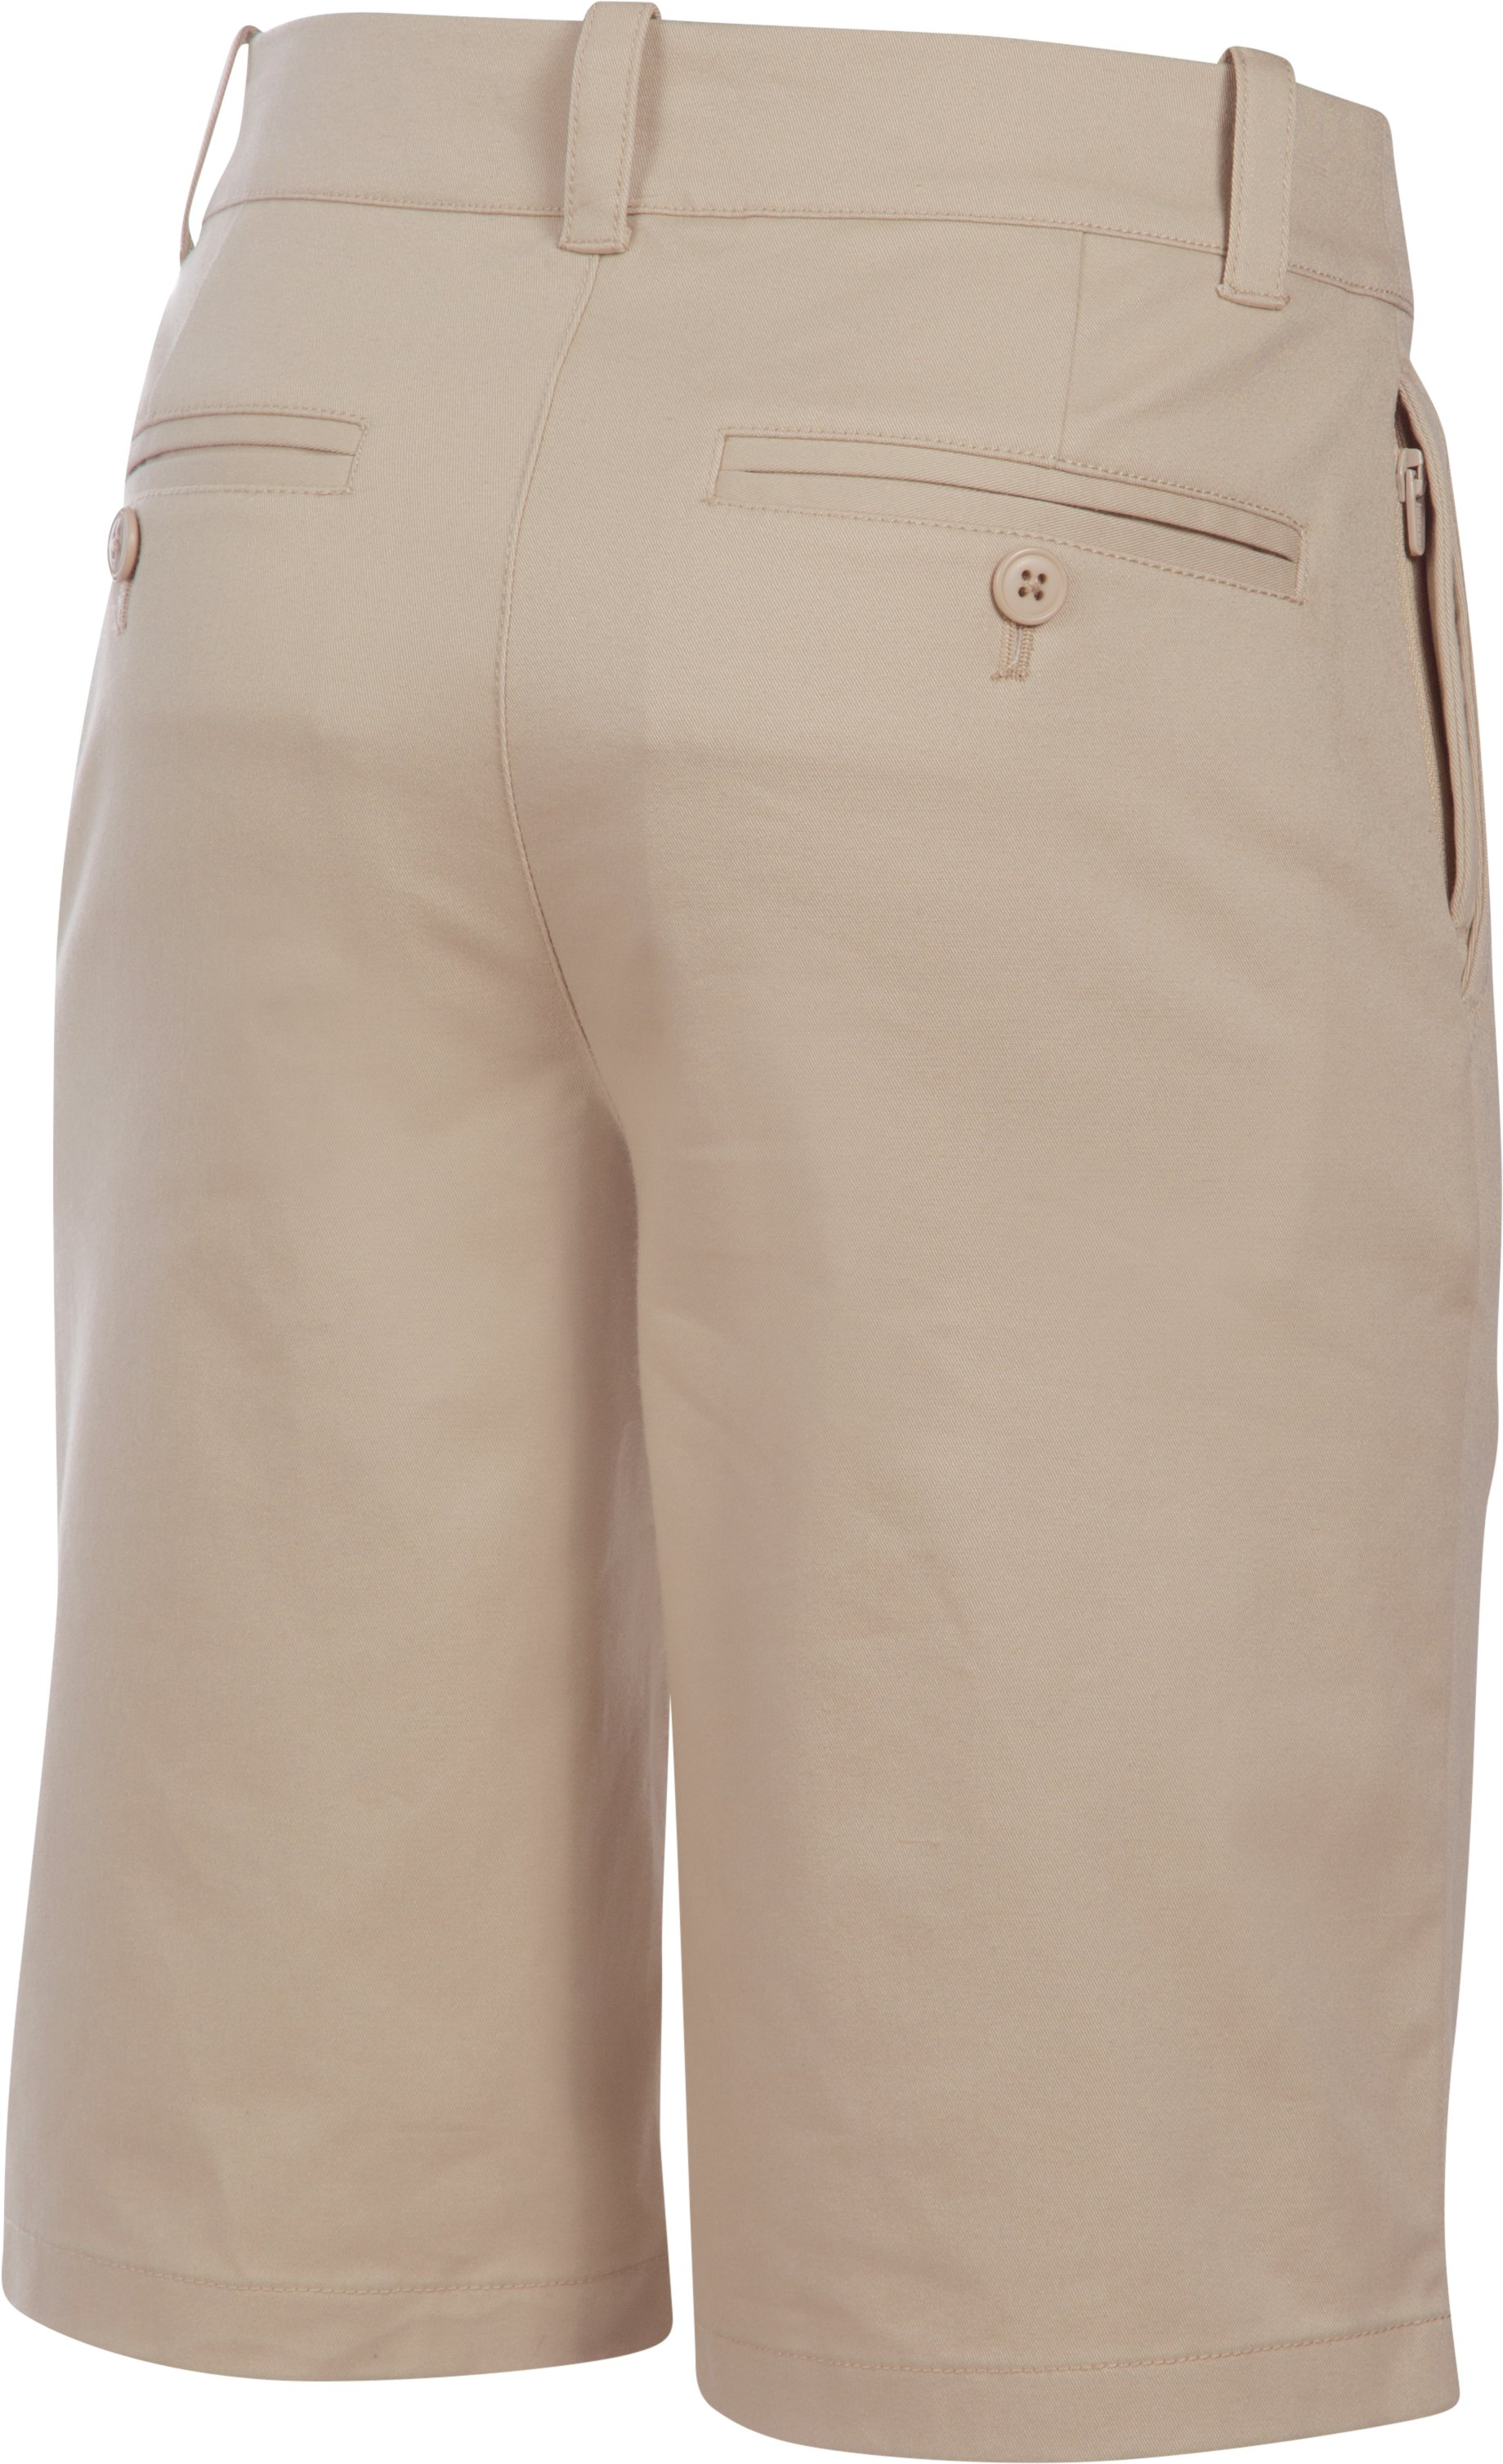 Boys' UA Uniform Chino Shorts – Husky, Desert Sand, undefined